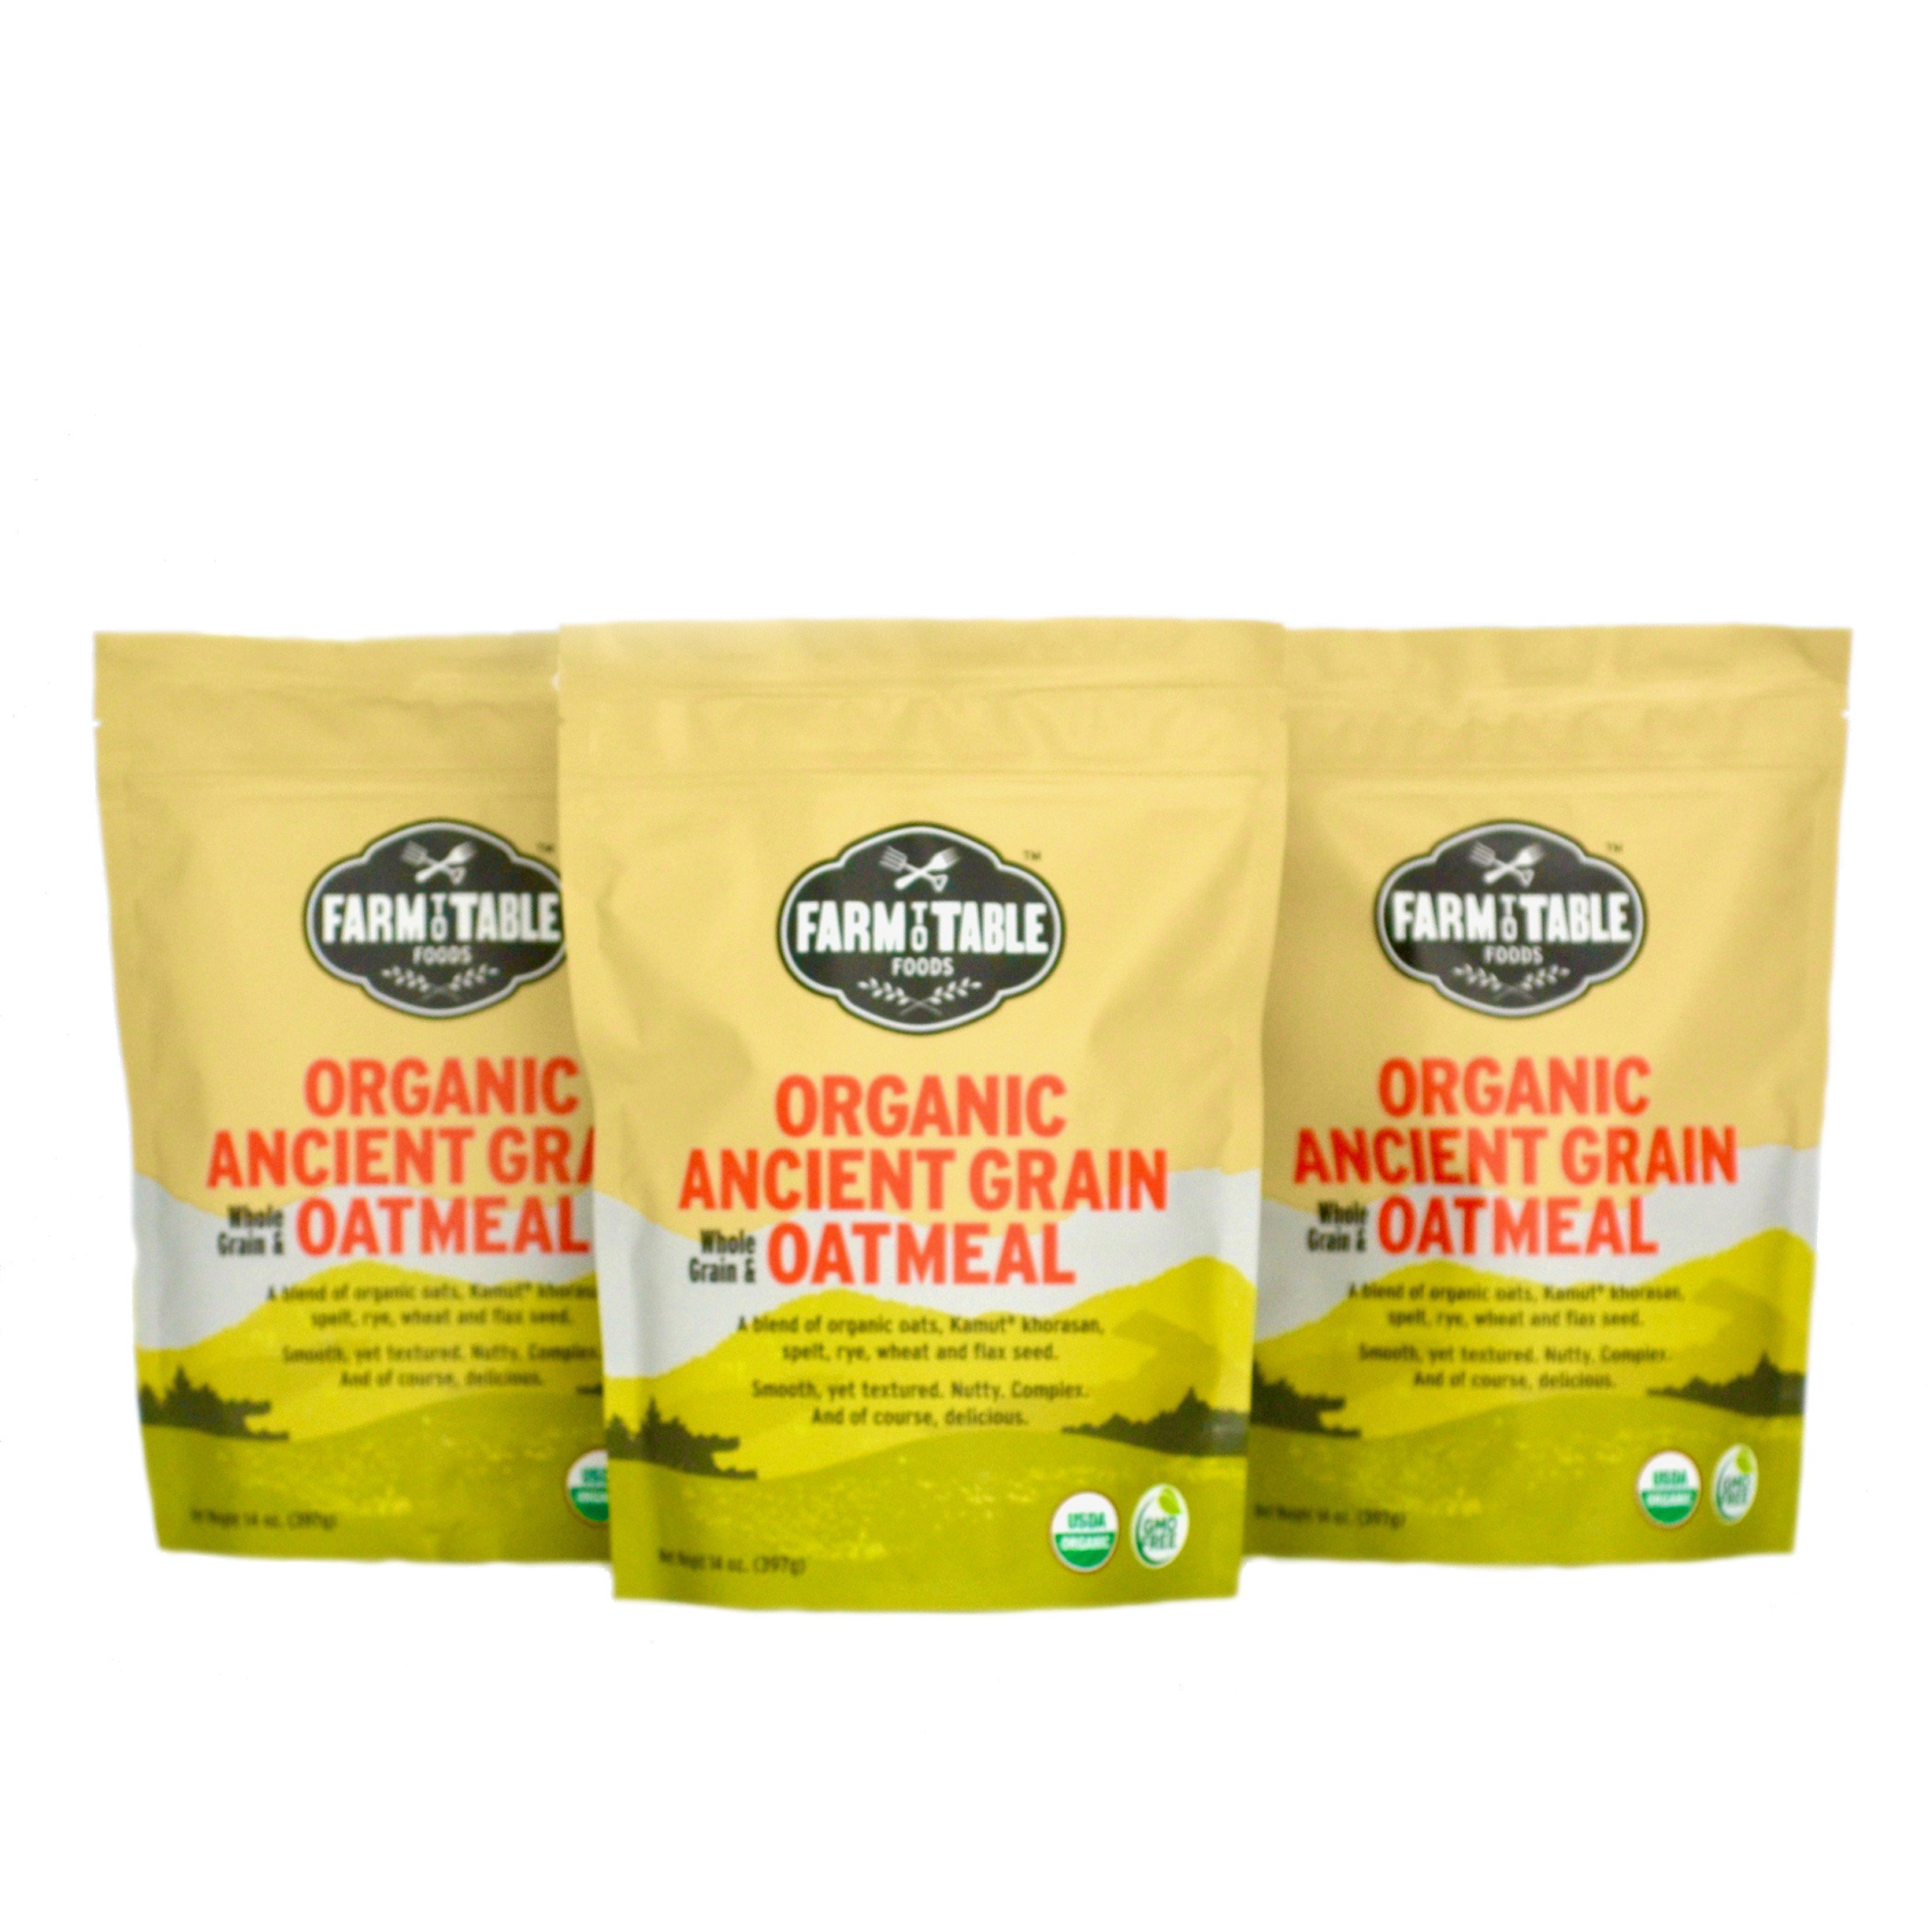 Farm to Table Foods (Organic Ancient Grain Oatmeal - 3-14 oz bags)